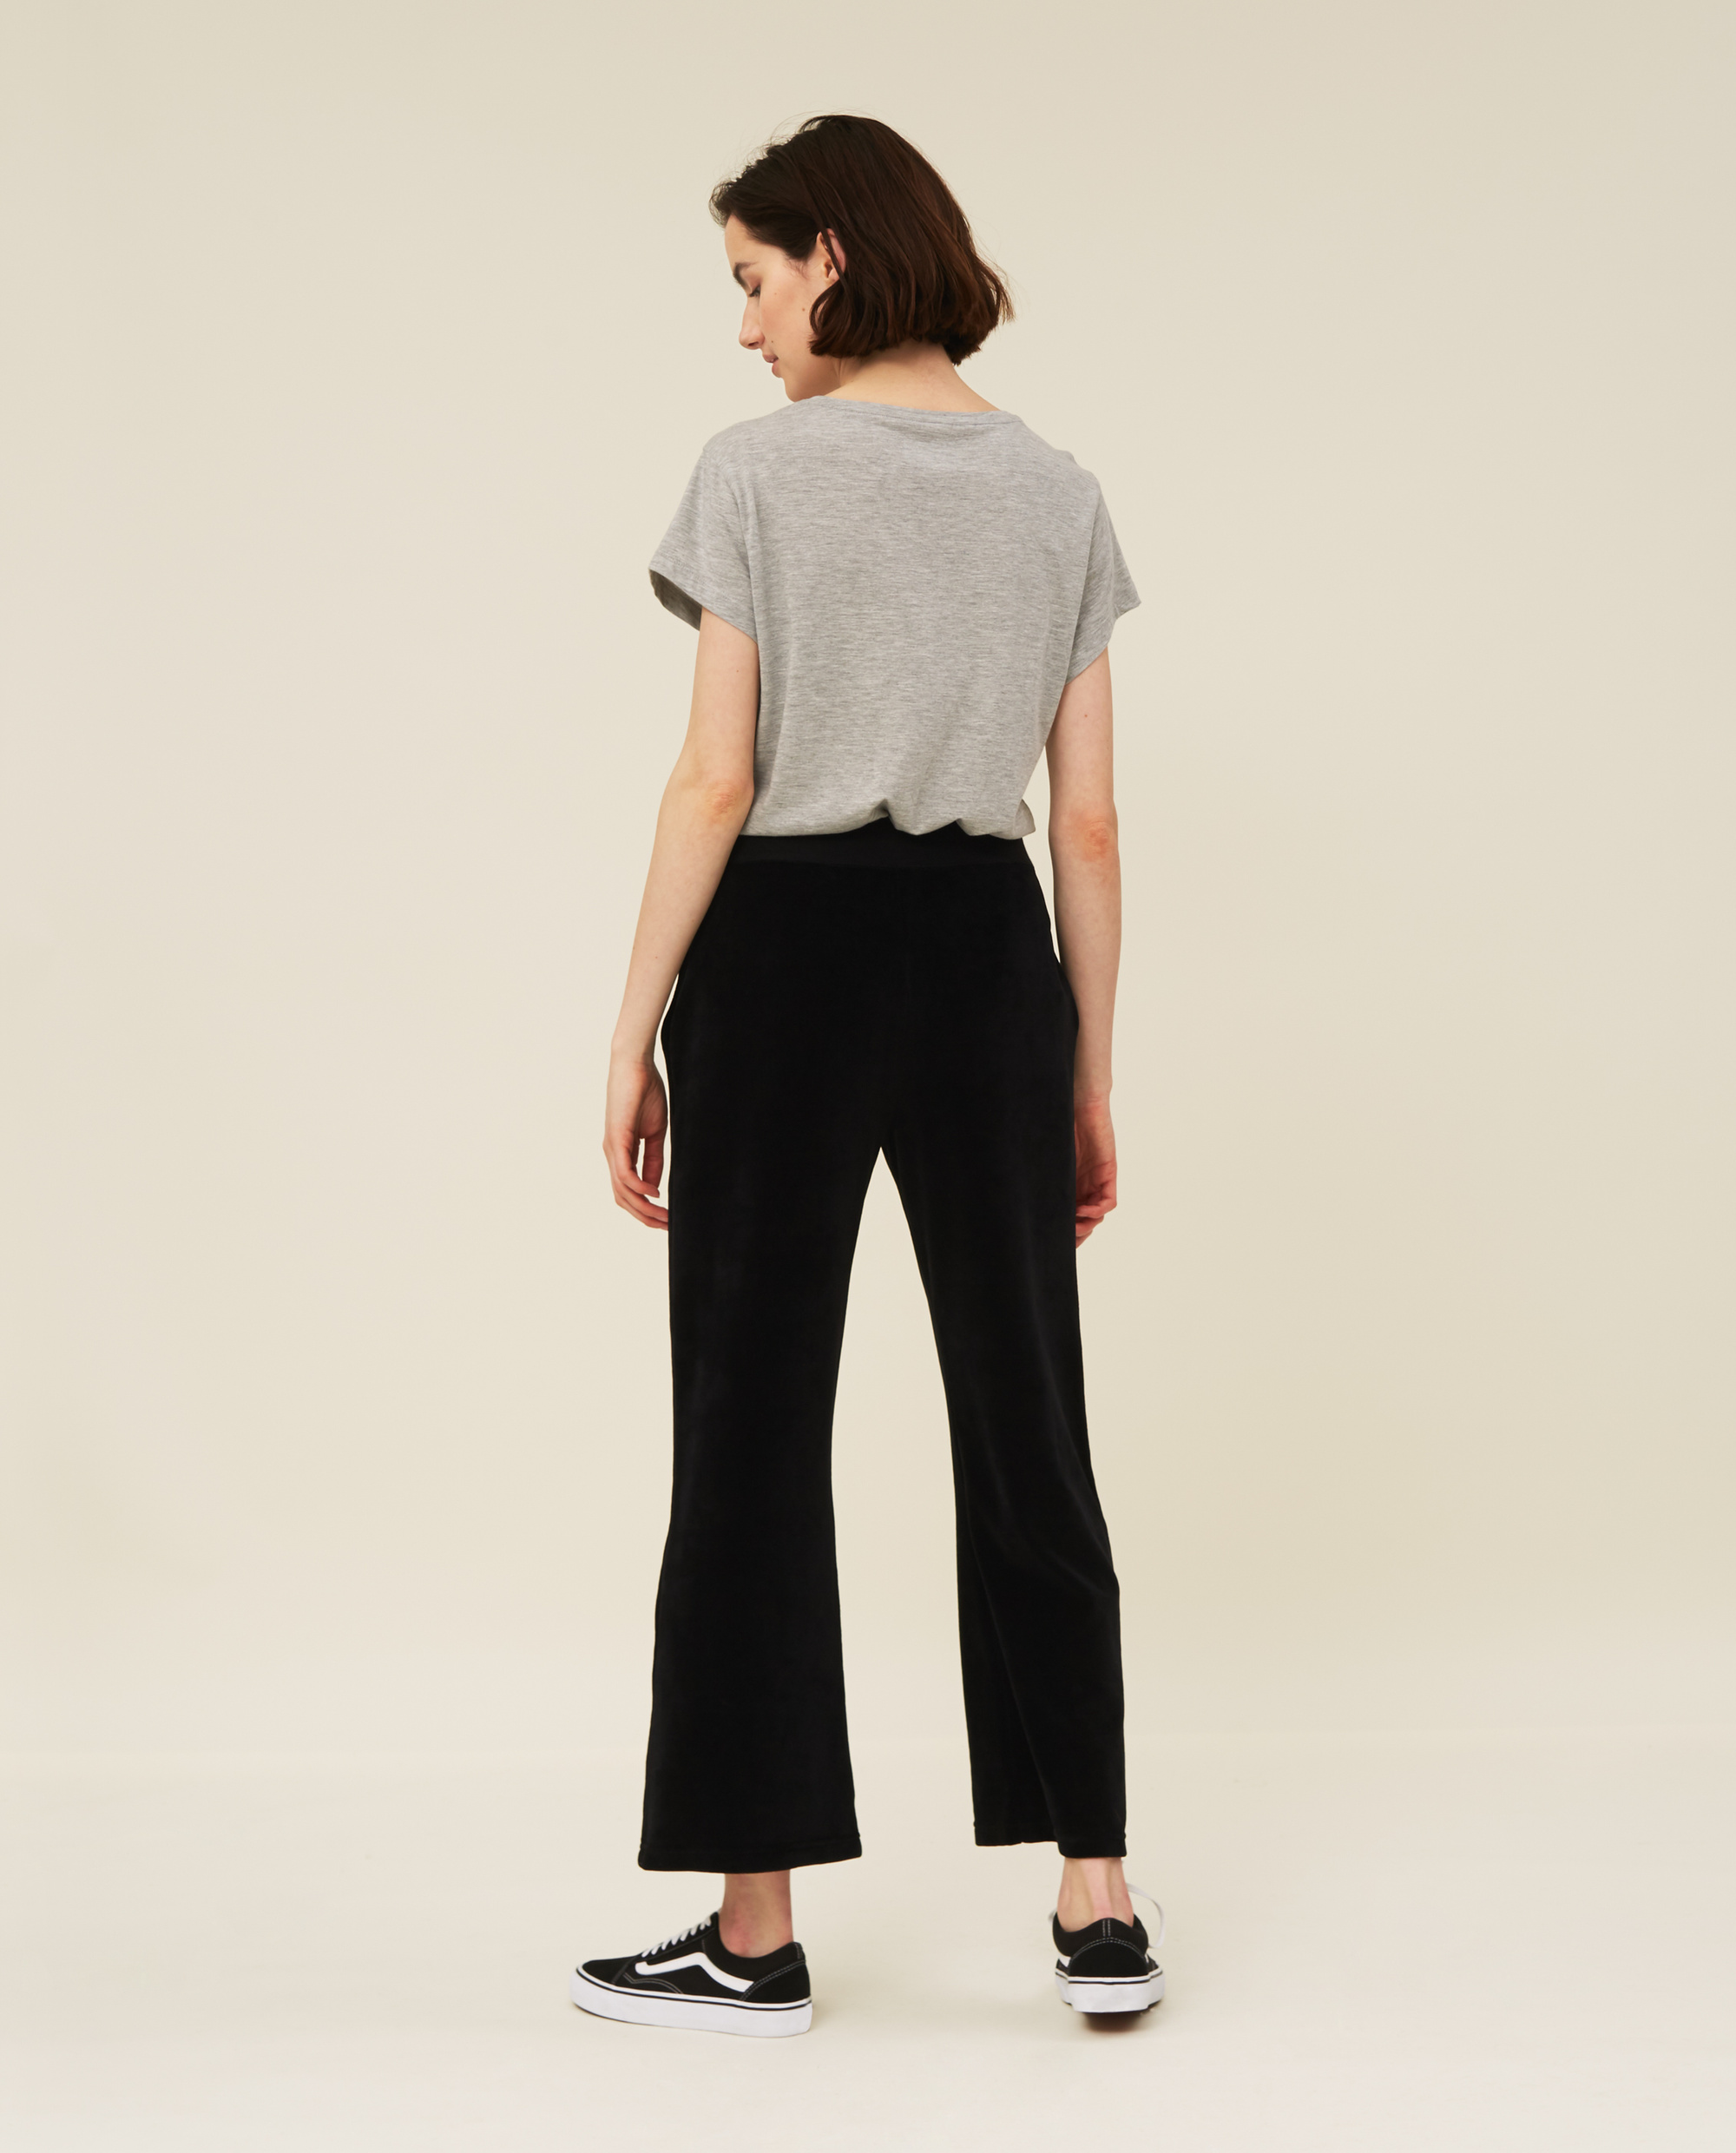 Leona Velour Pants, Black